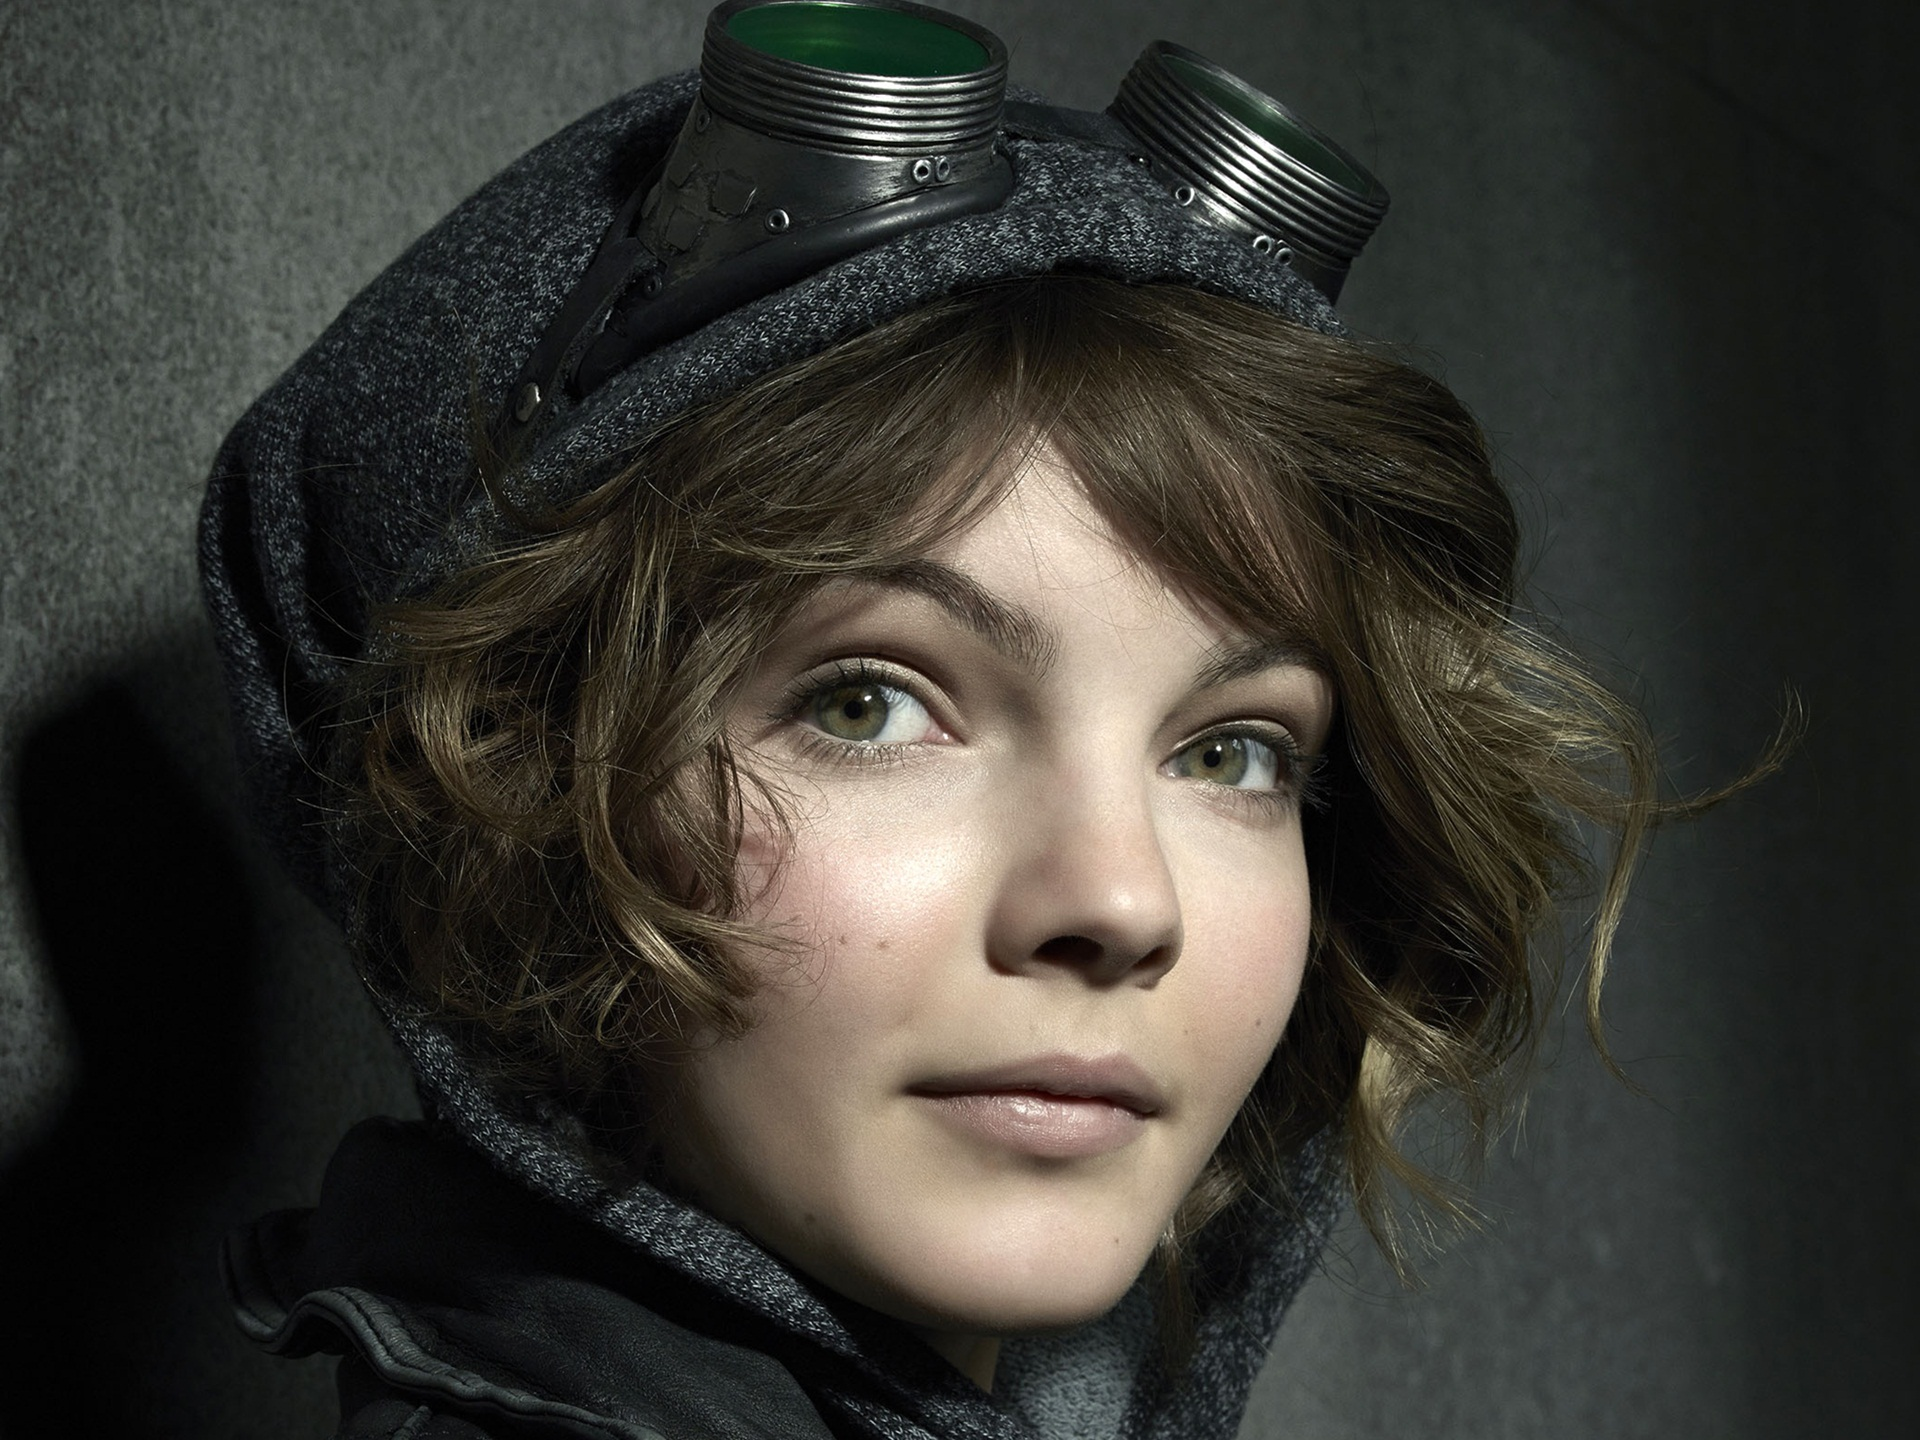 Camren Bicondova Hd Wallpapers For Desktop Download